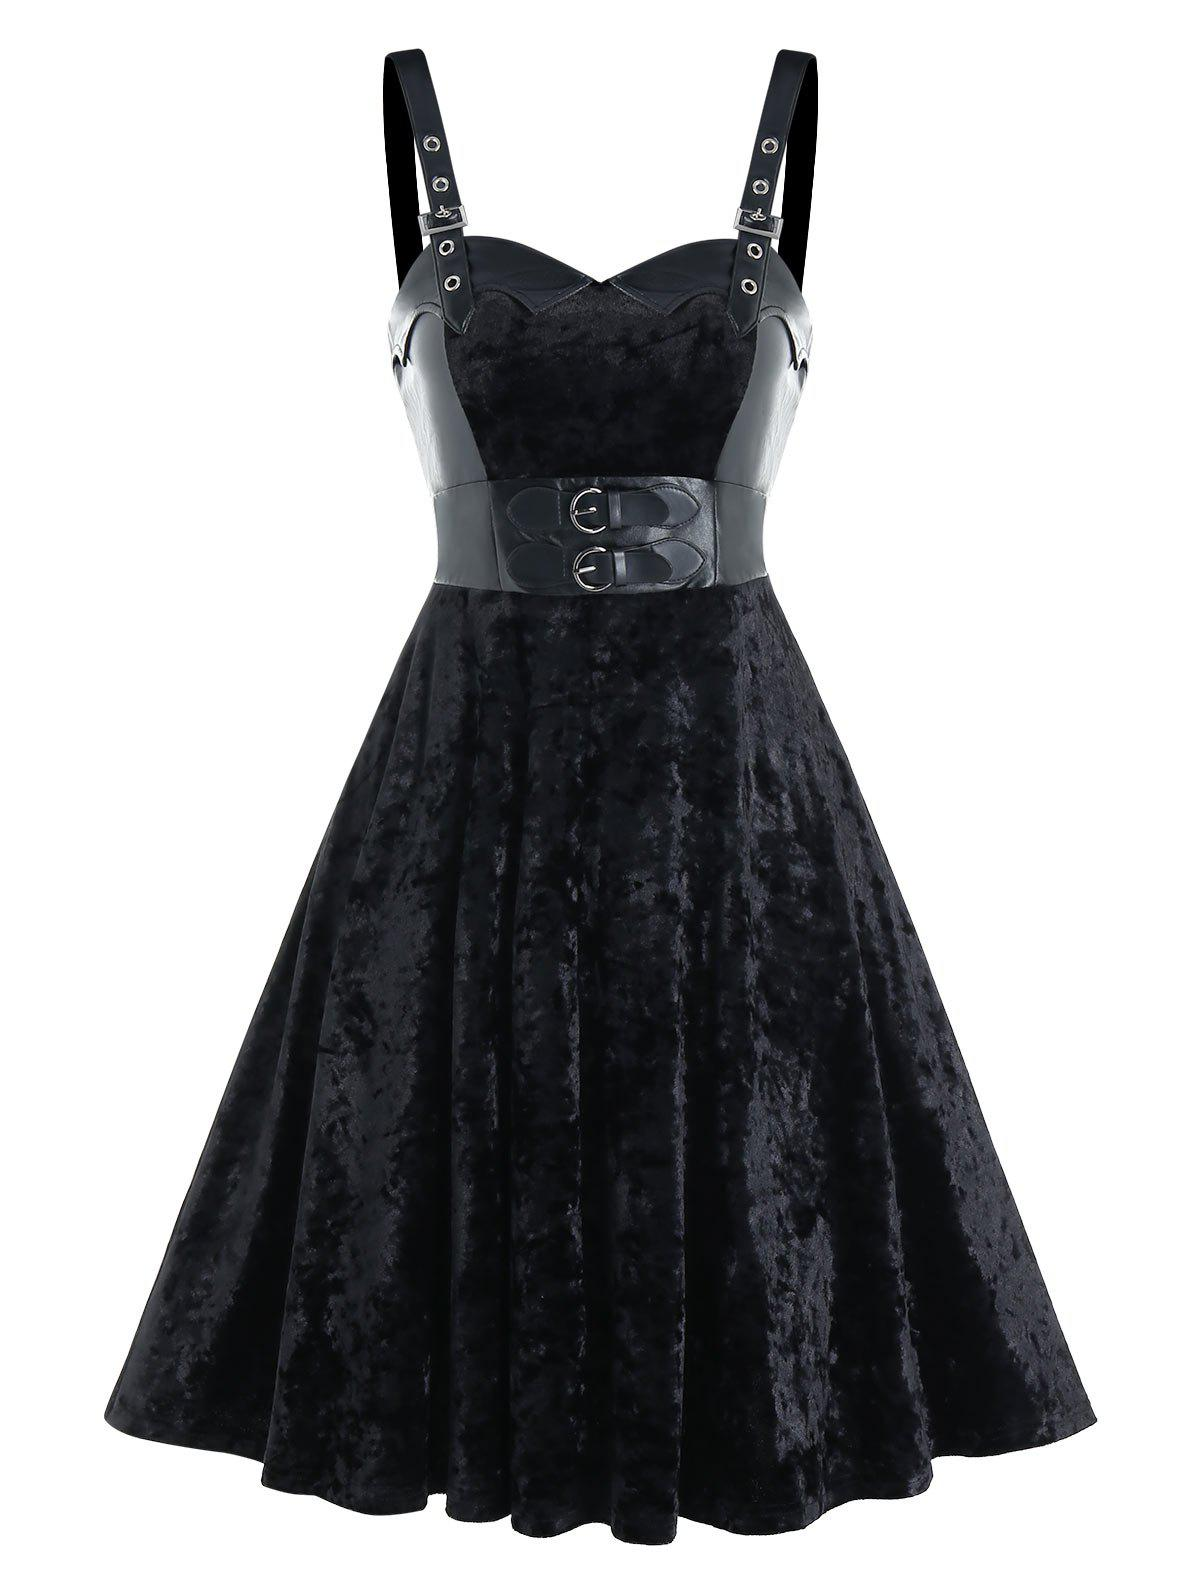 Buckle Strap Velvet Fabric Lace-up Sleeveless Dress - BLACK 2XL